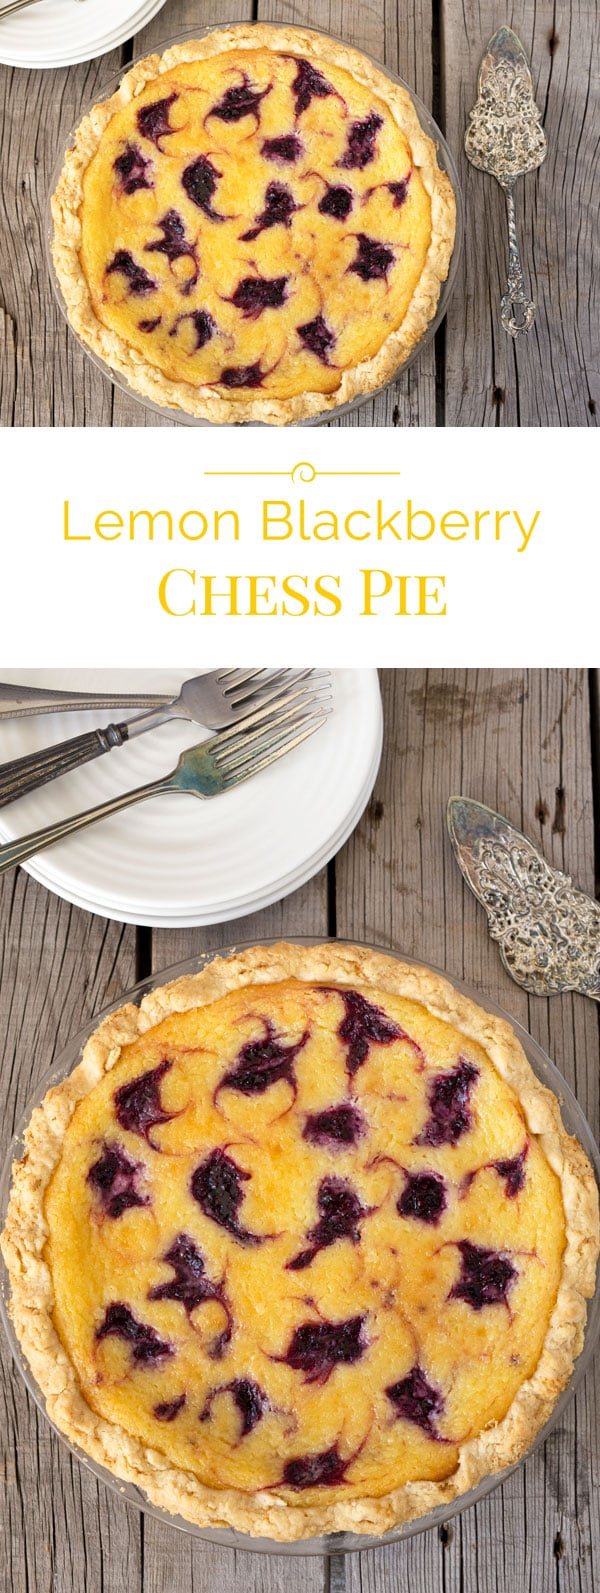 Lemon-Blackberry-Chess-Pie-Collage-Barbara-Bakes